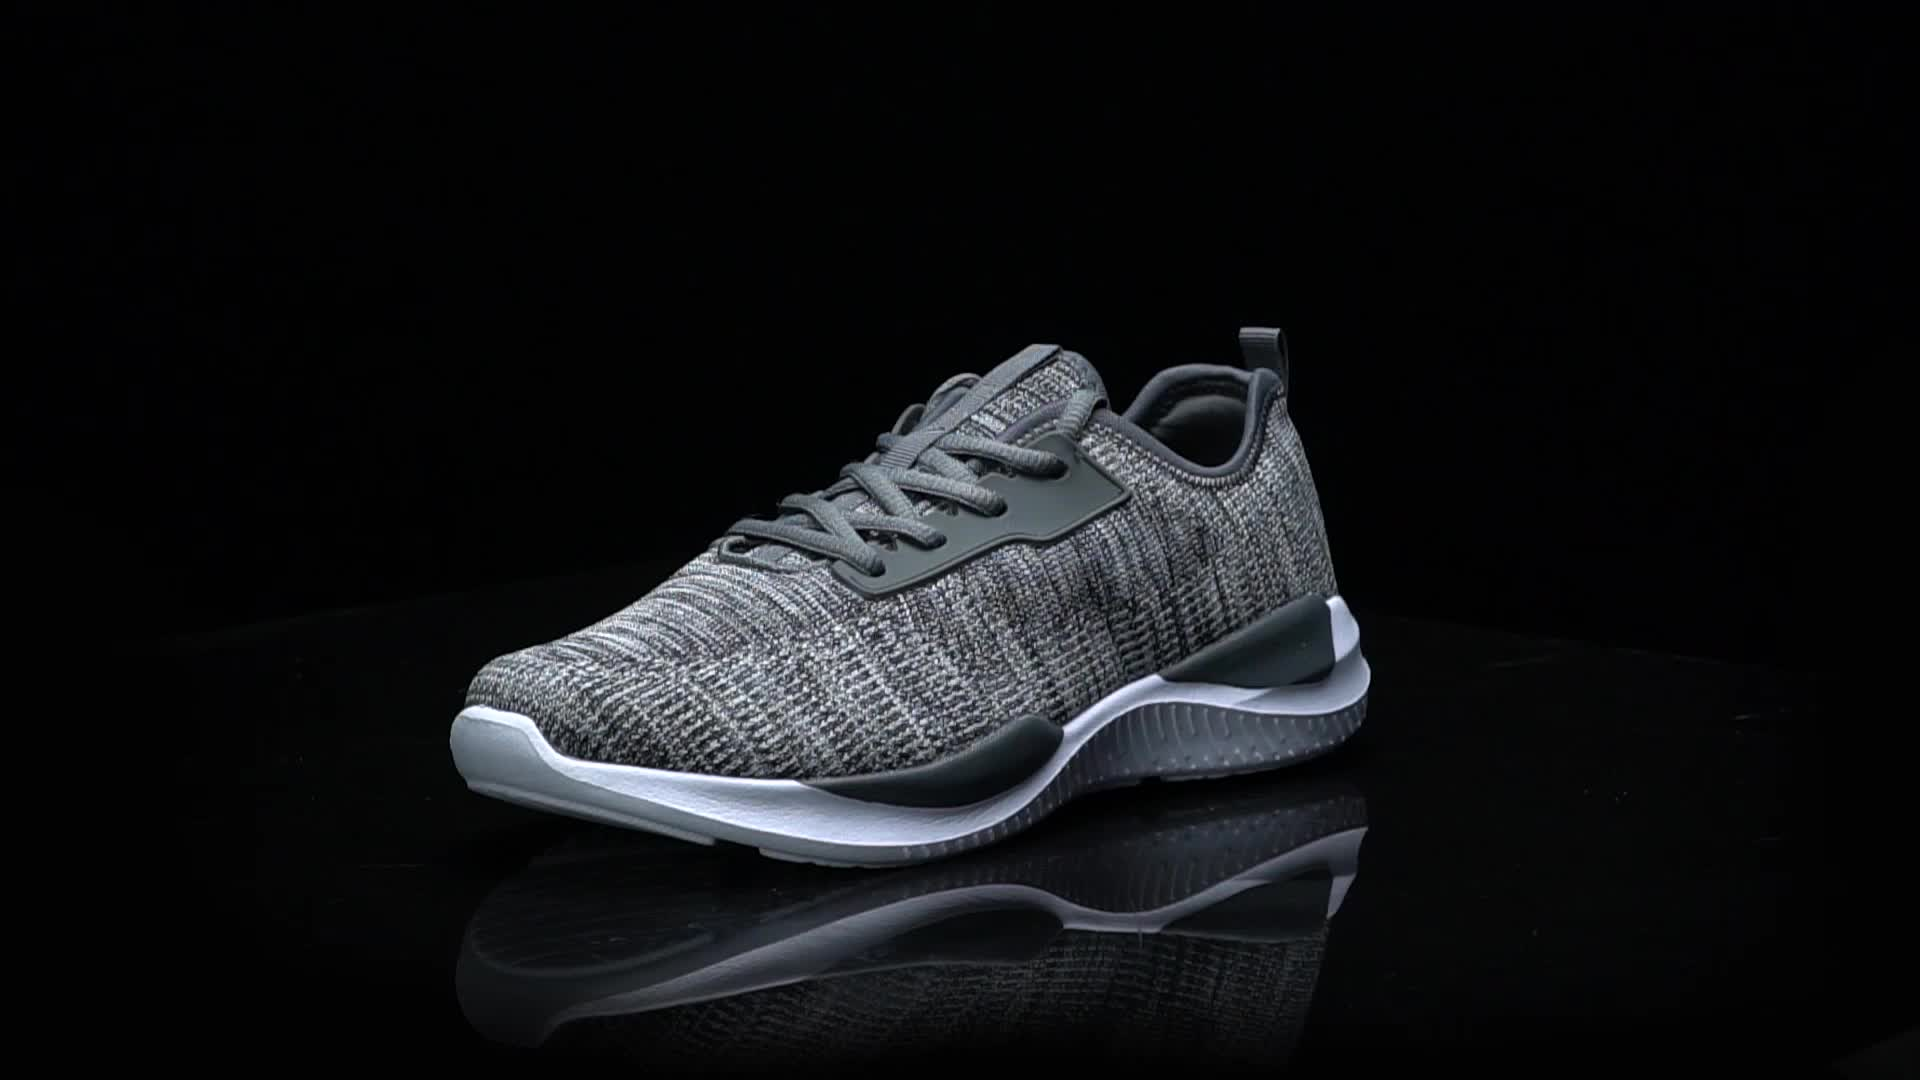 Hotsale  fashion knitting fabric sneakers for men casual sports shoes